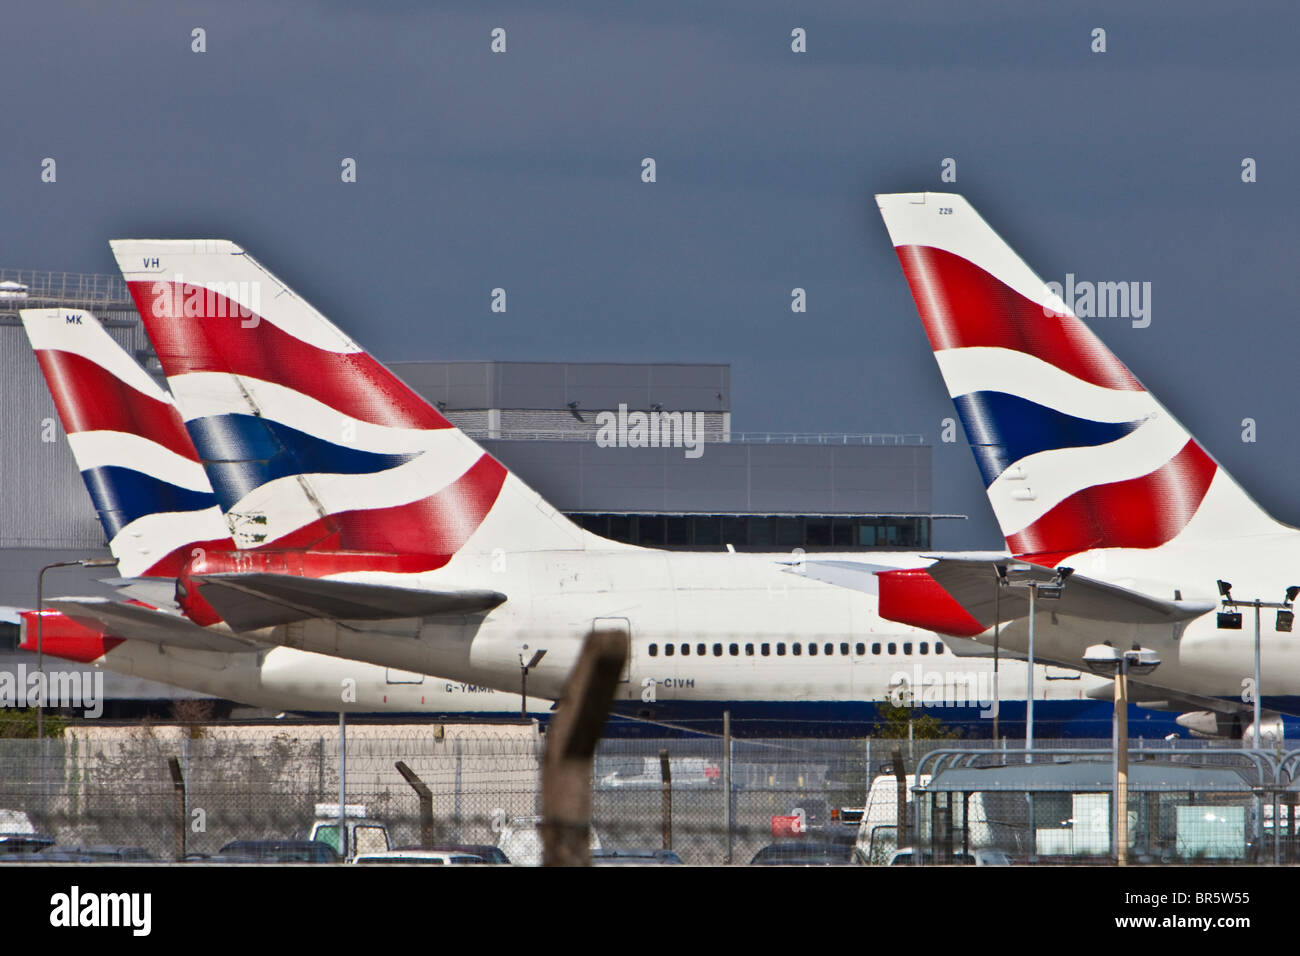 British Airways planes lined up at London's Heathrow Airport. - Stock Image